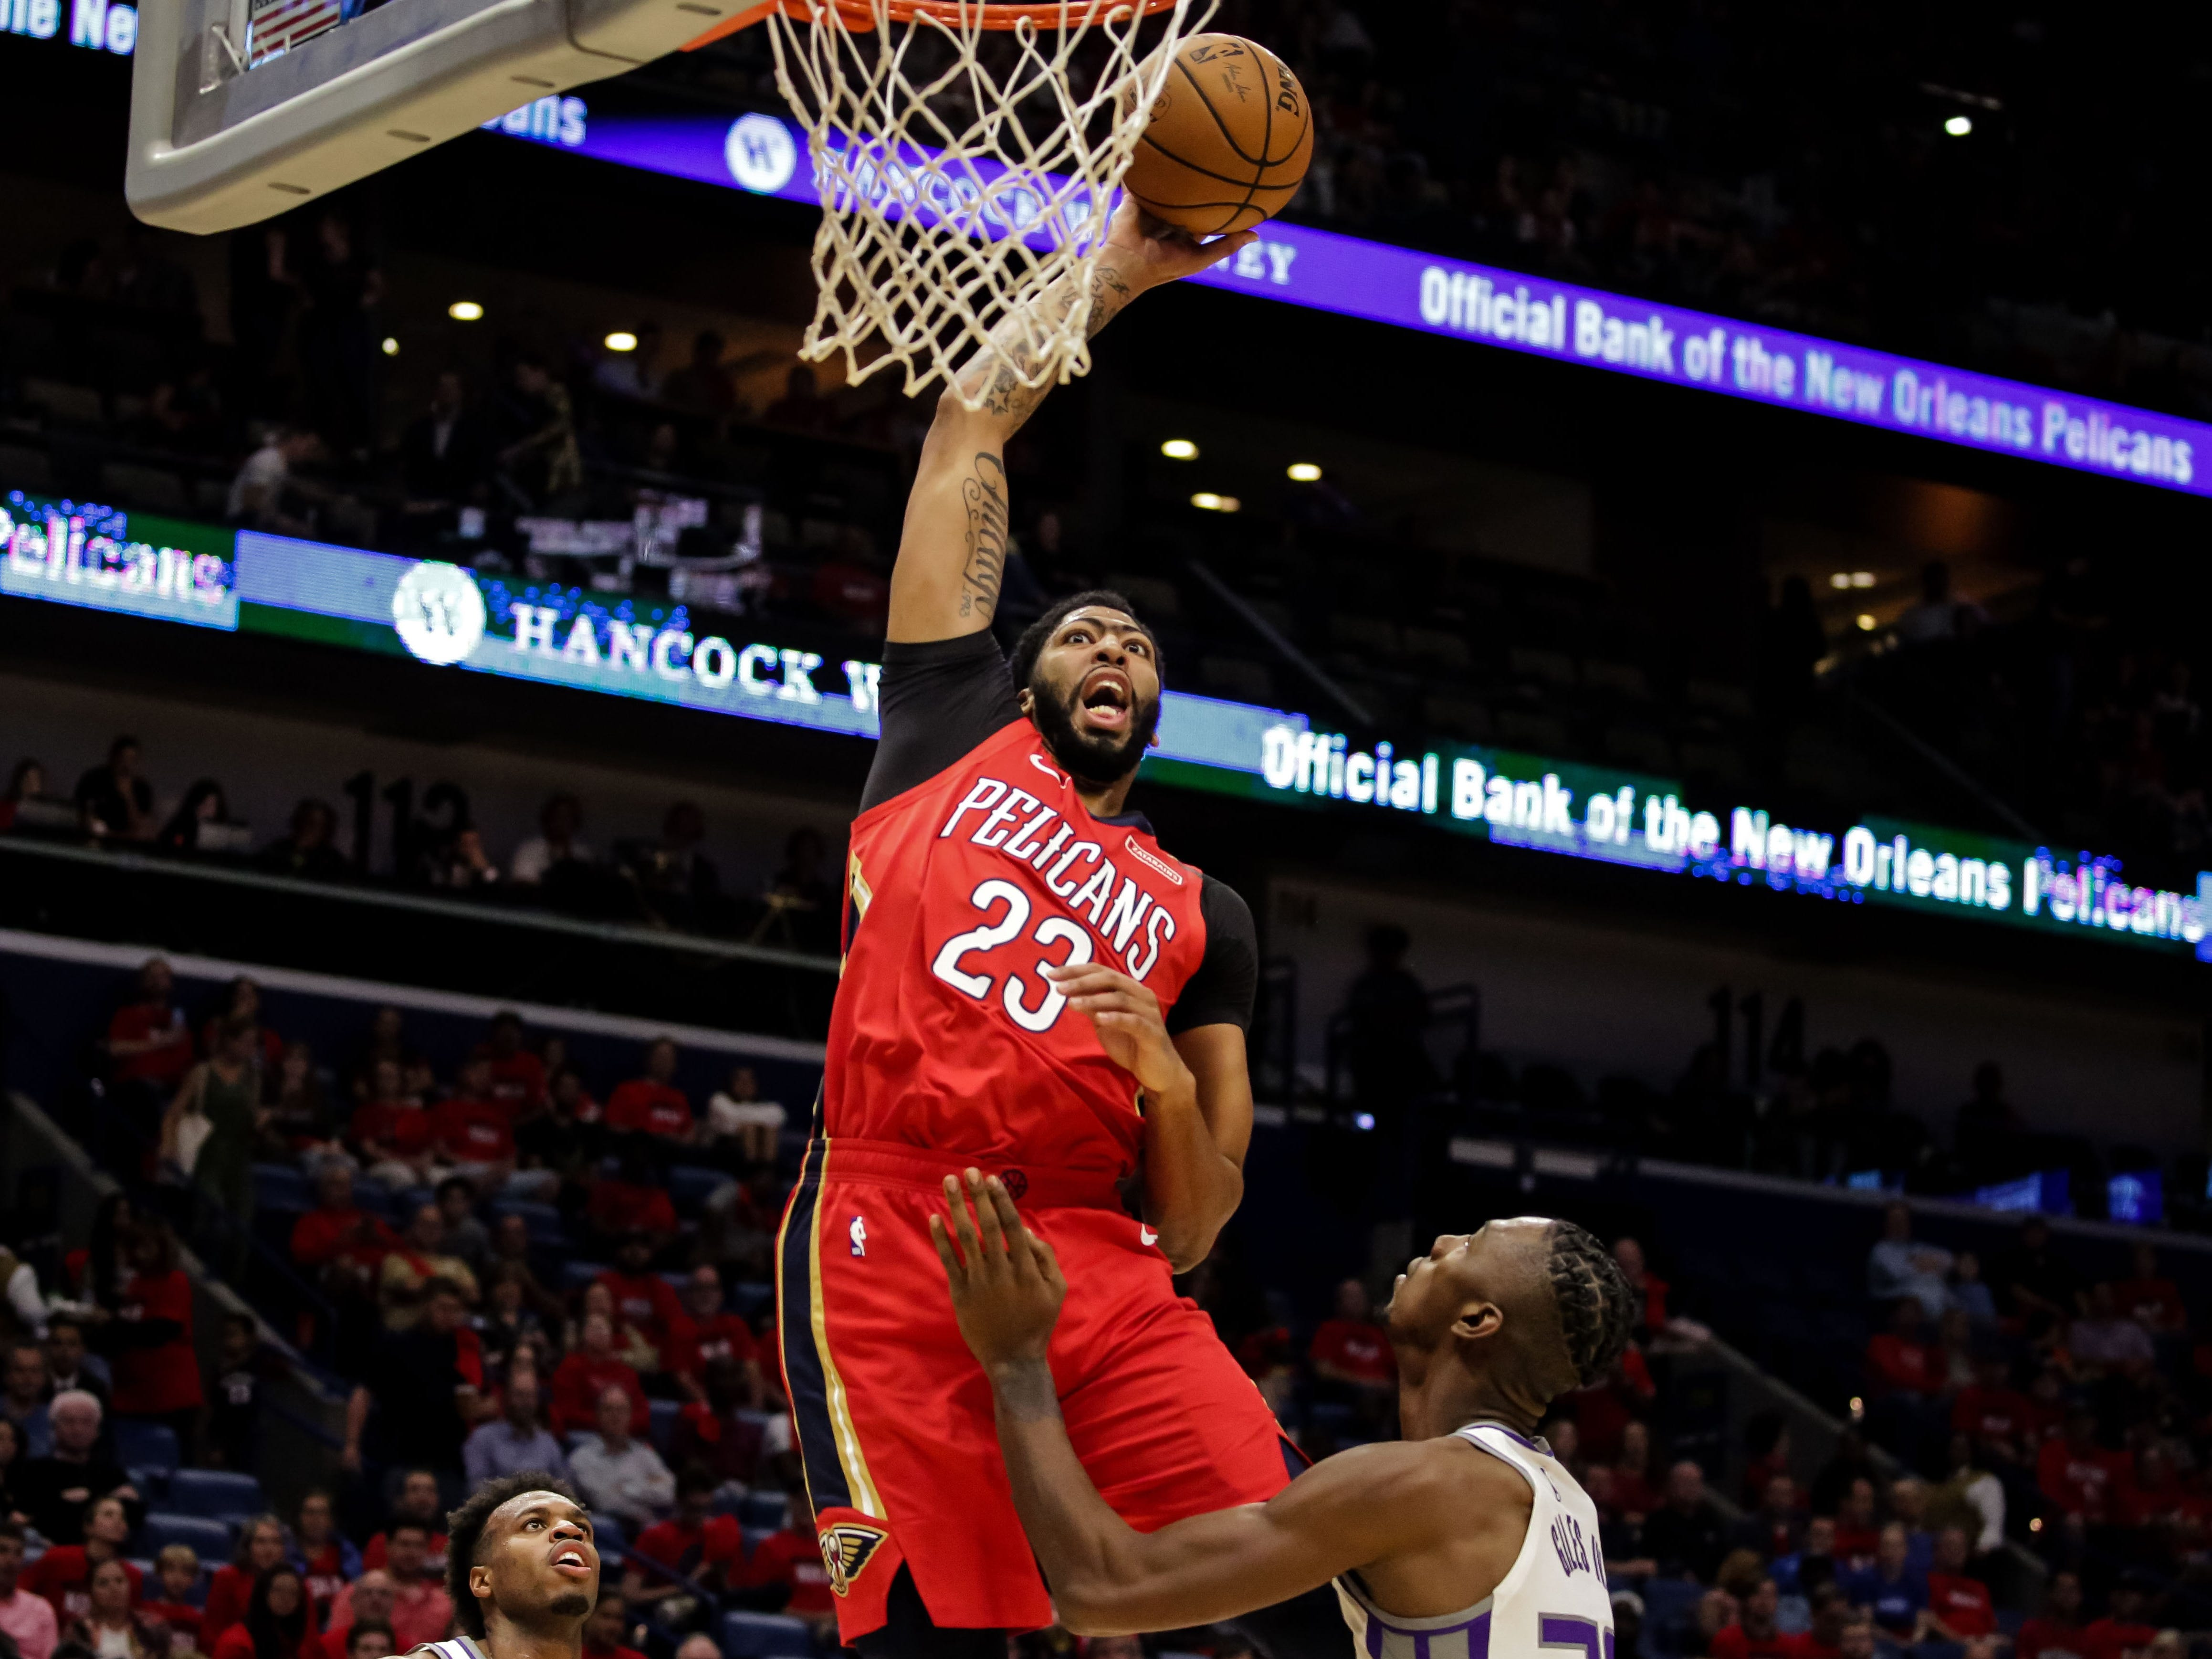 Oct. 19: Pelicans forward Anthony Davis goes up high for a monster one-handed flush against the Kings.